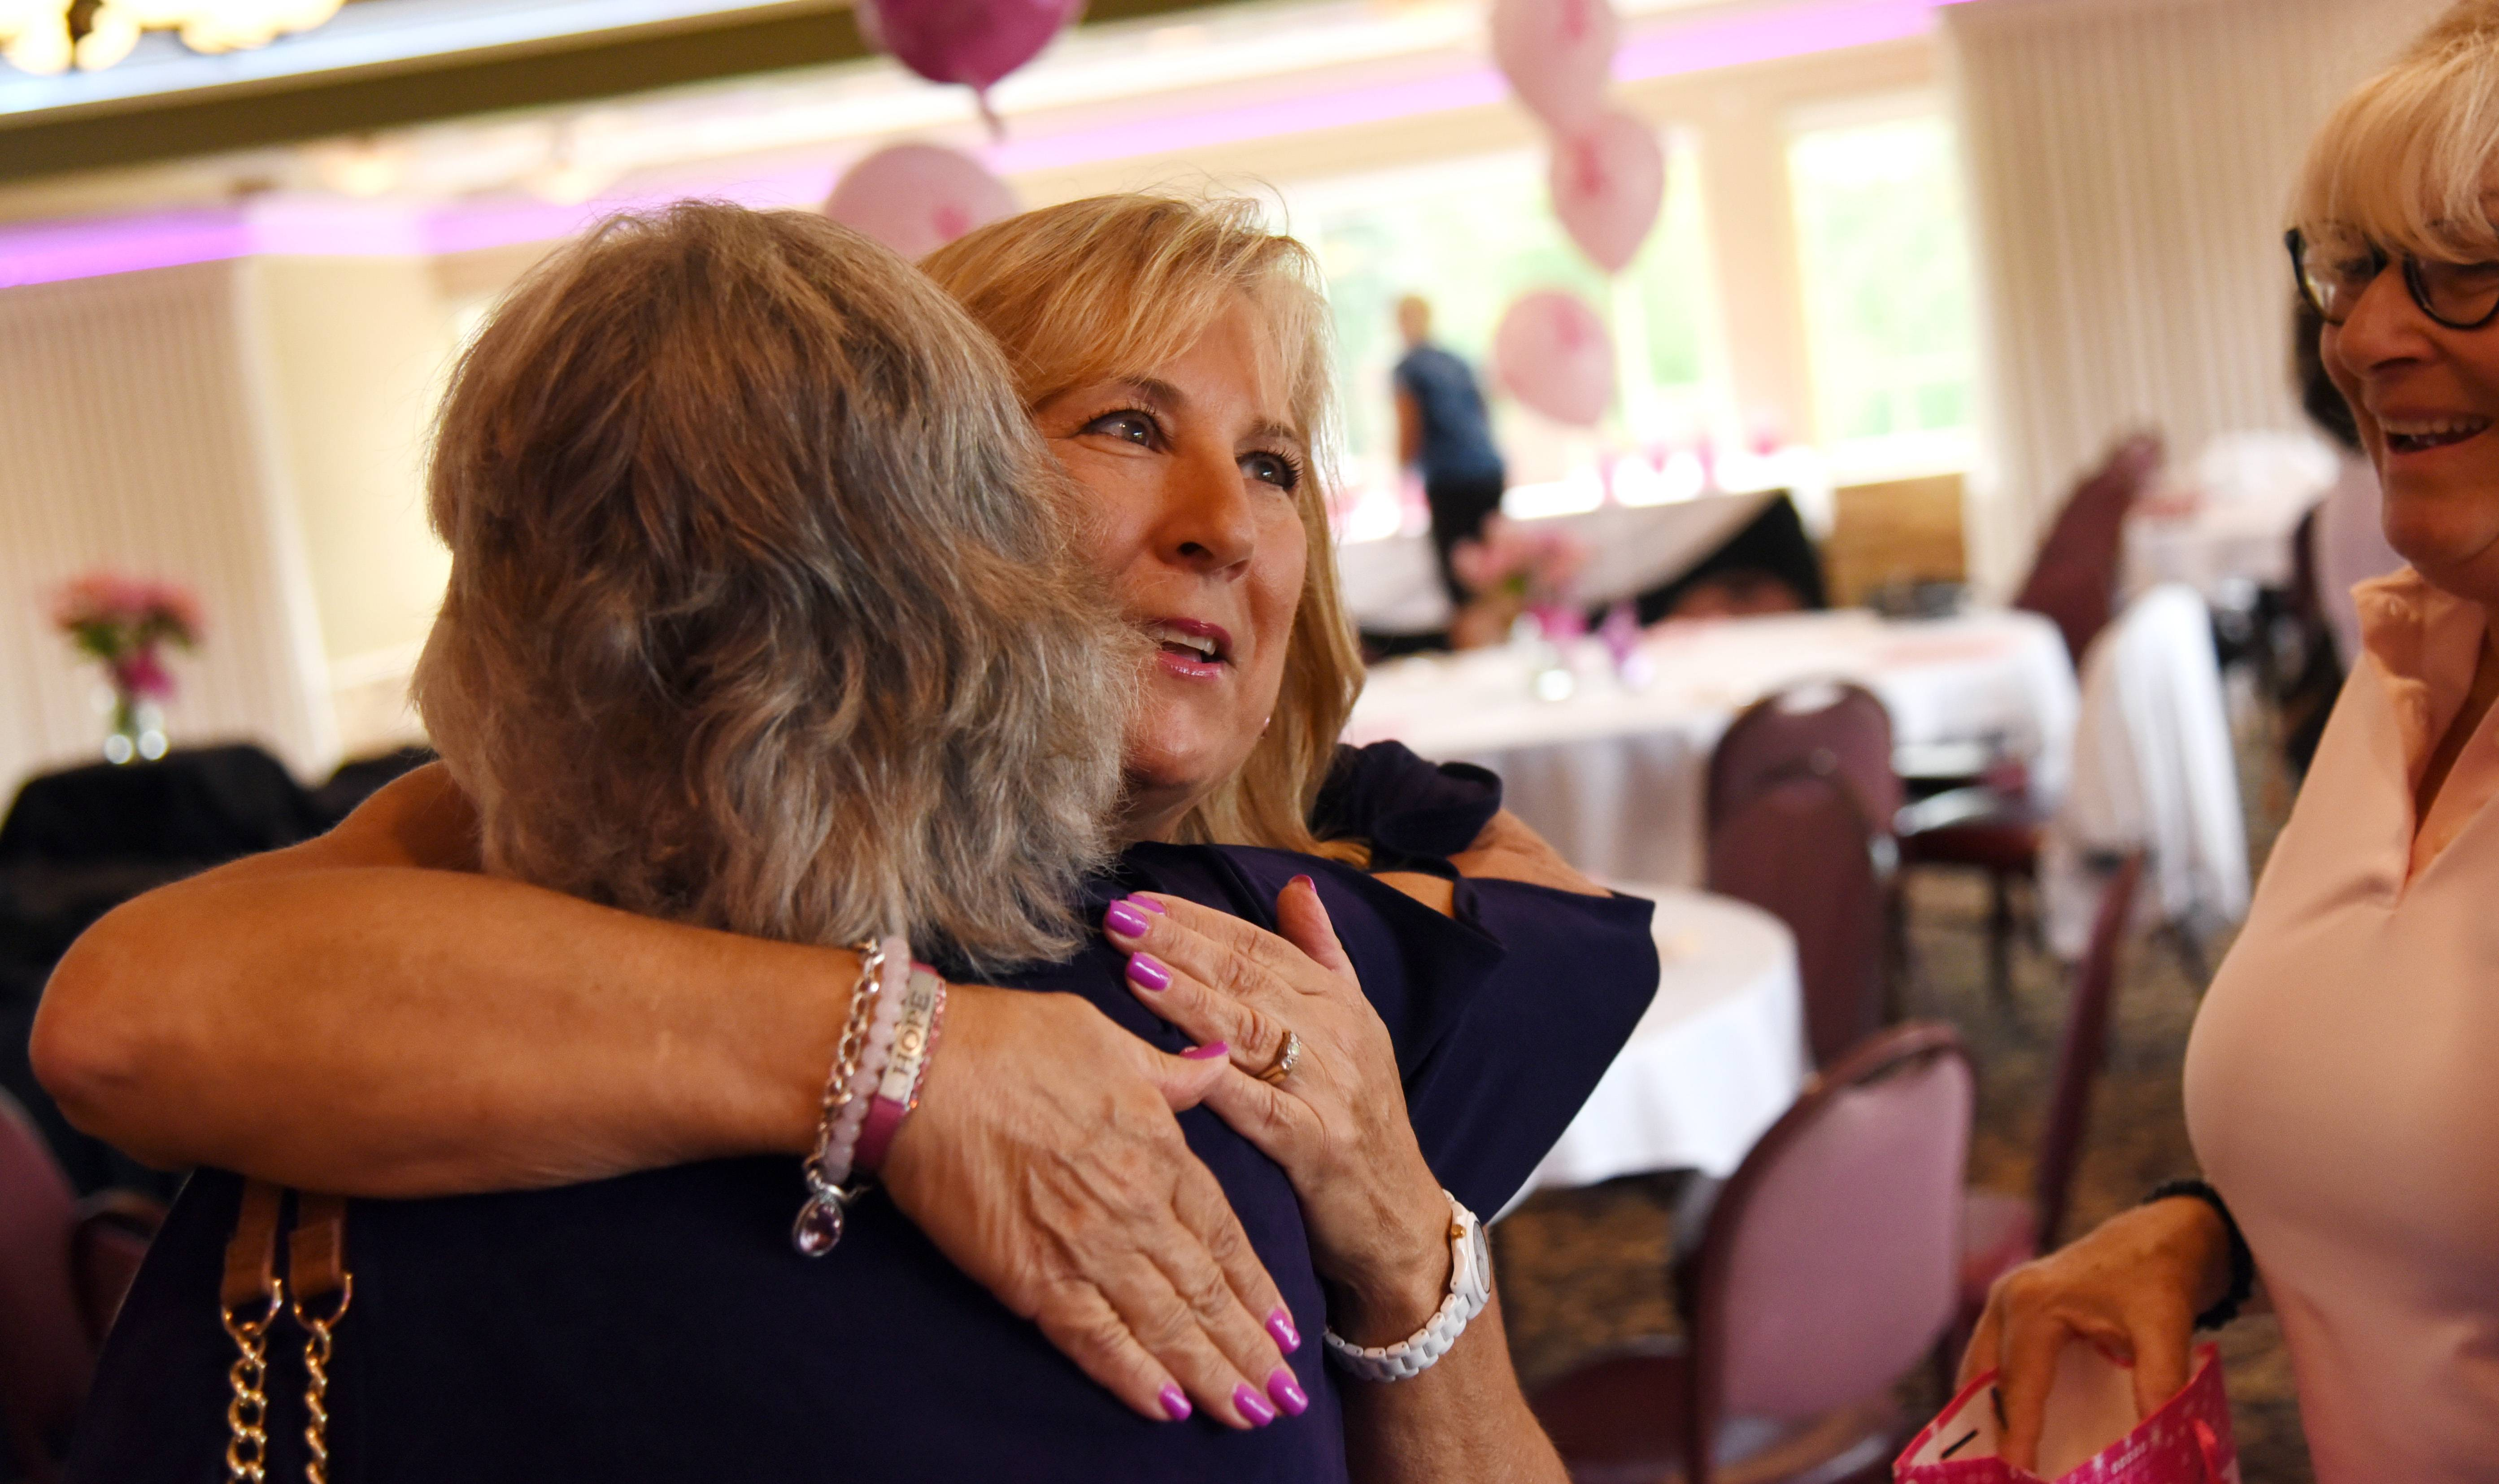 Event organizer Linda Ewing, facing, hugs Cheri Schillo at a golf outing benefiting breast cancer research at Schaumburg Golf Club Monday. Both women are from Schaumburg.